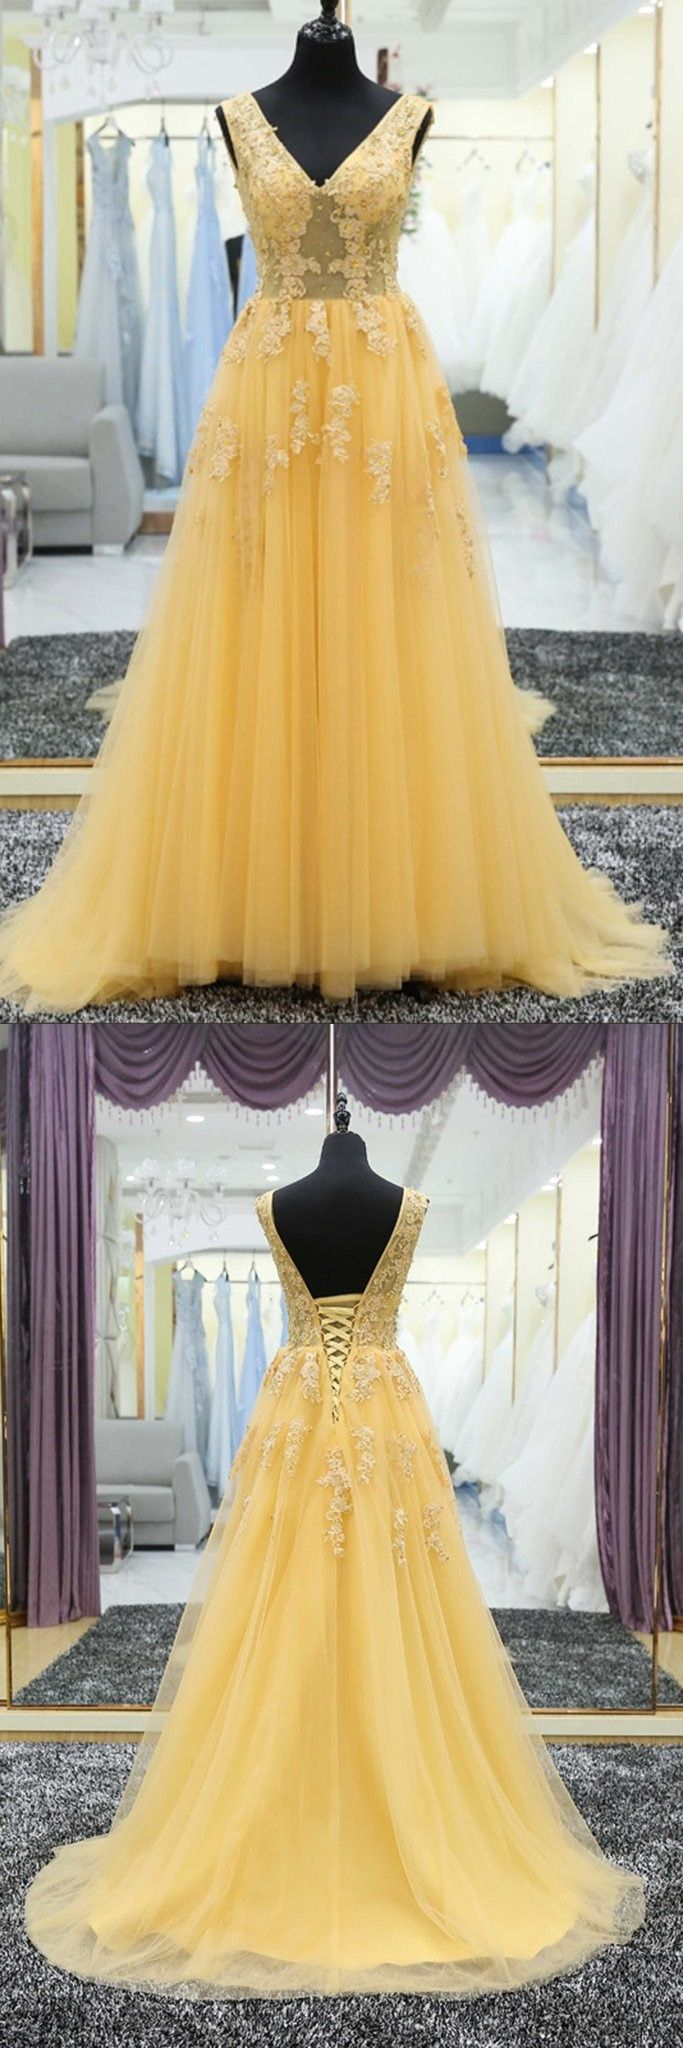 Yellow tulle tulle lace applique vneck long prom dress evening